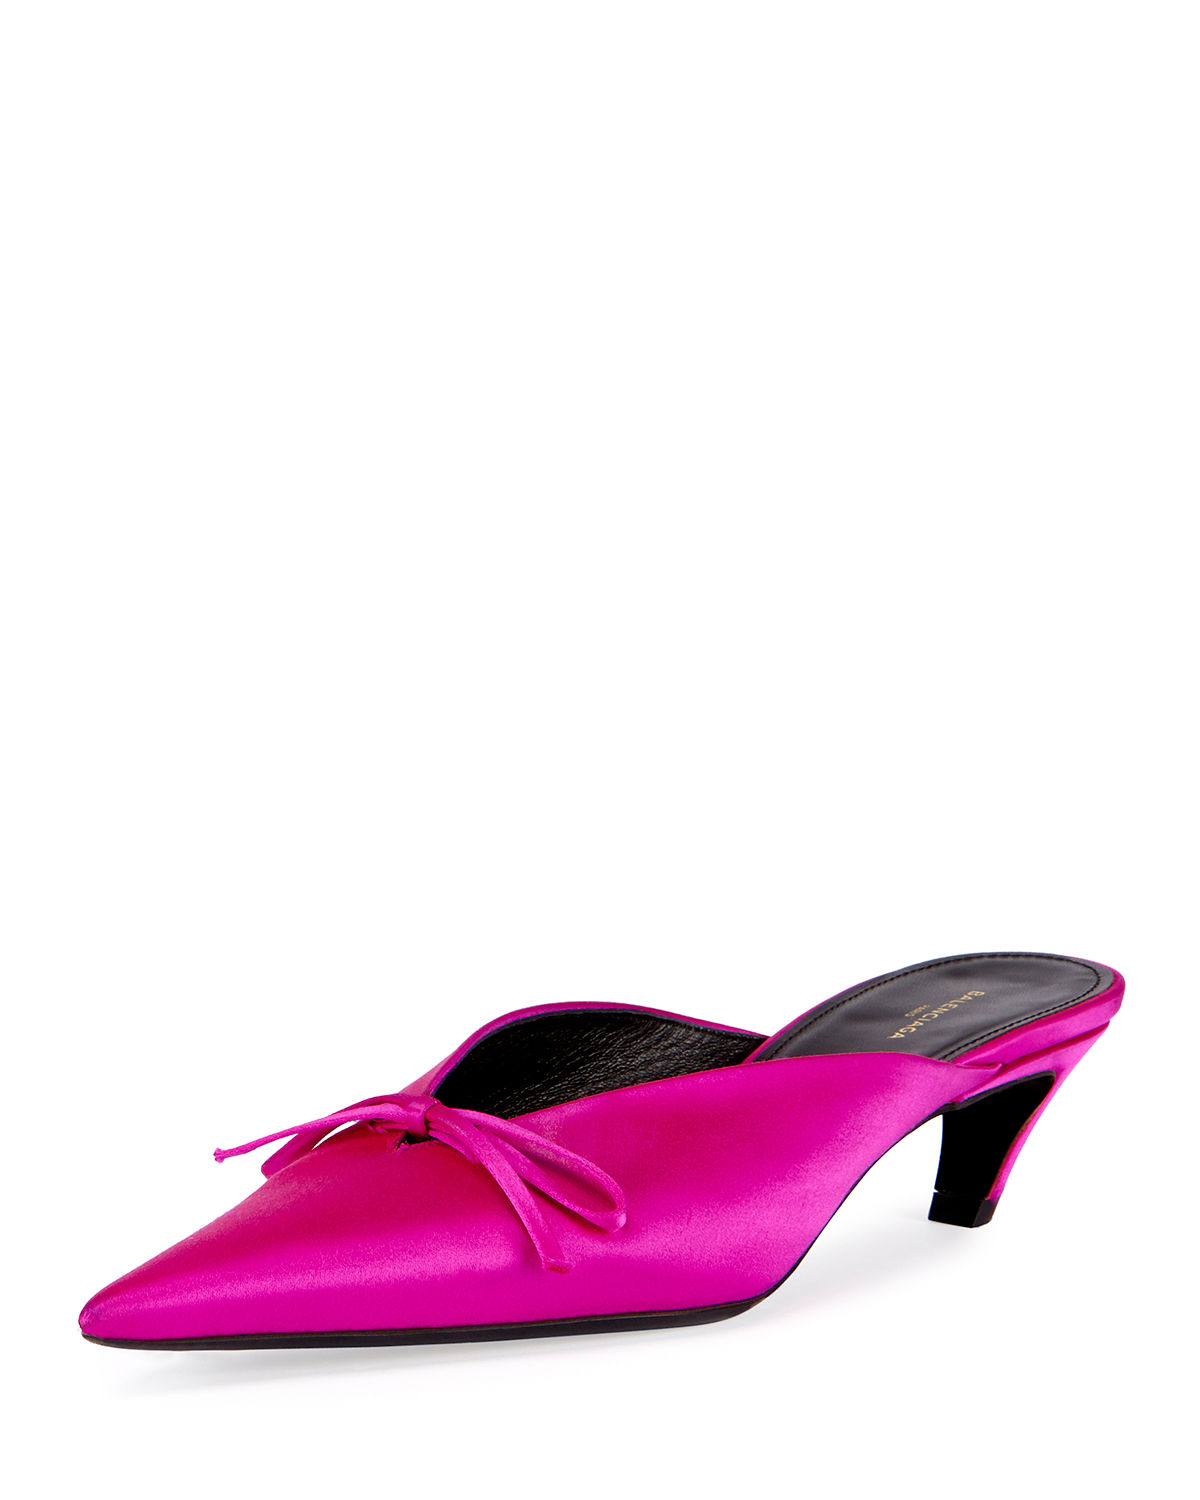 Balenciaga Satin Point Toe Mule Pump Rose Fuchsia Modesens